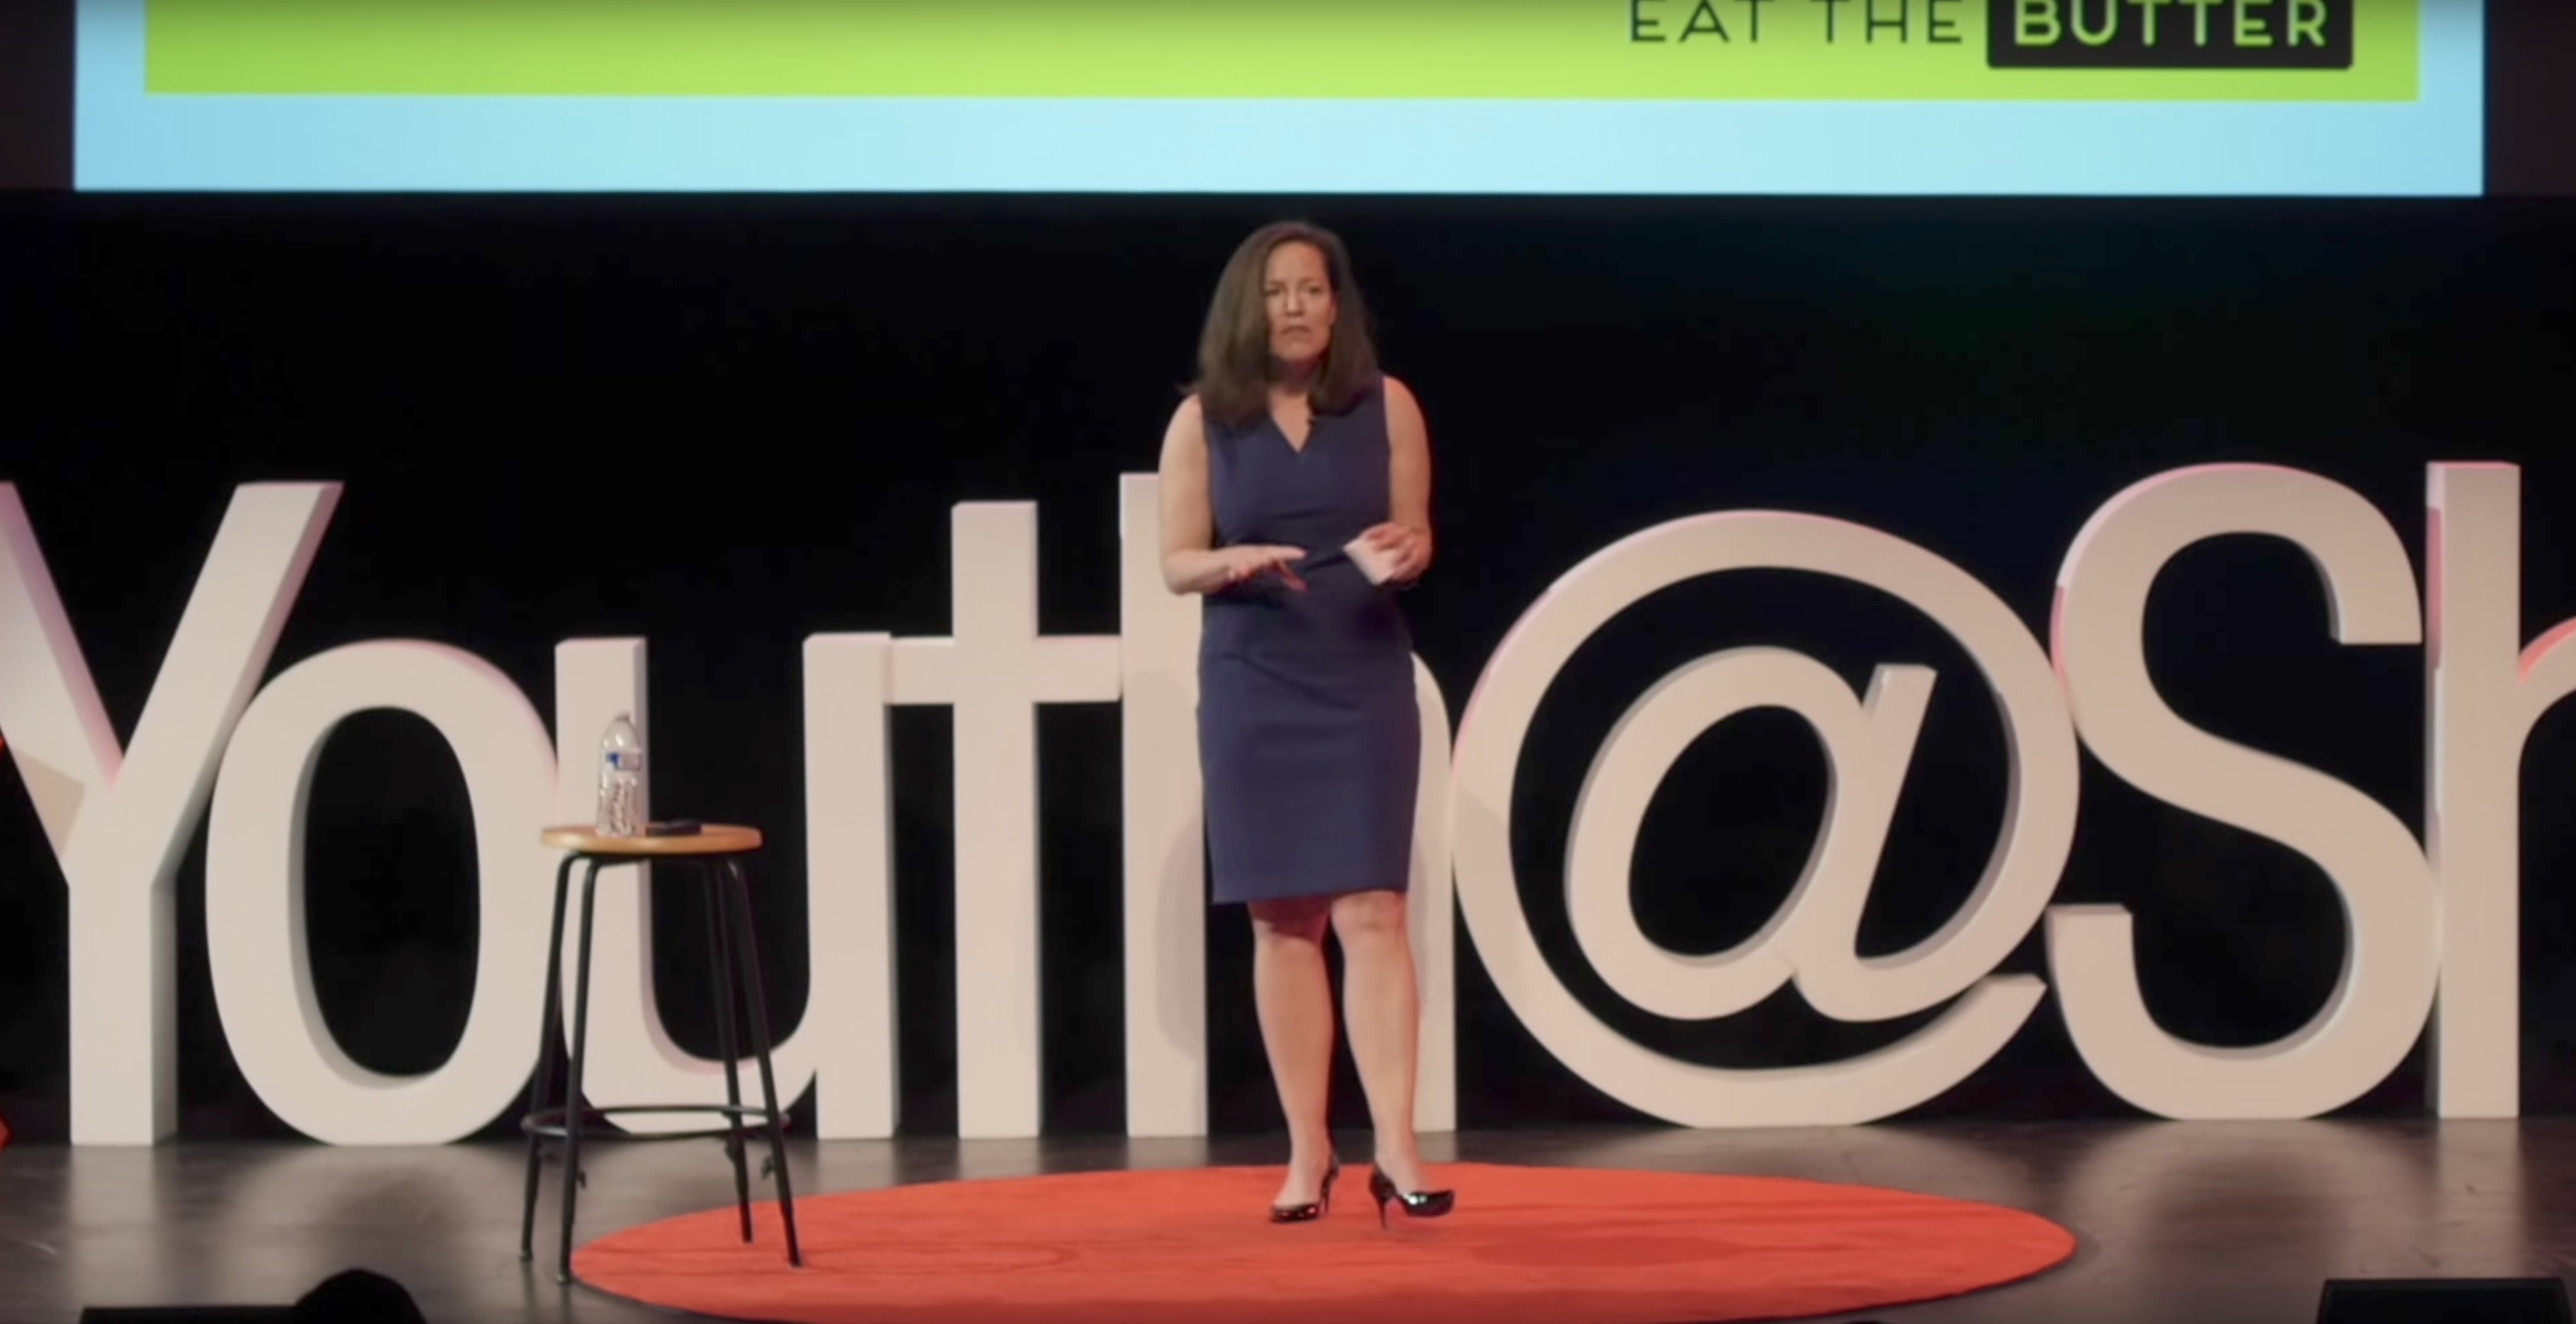 Take Back Your Plate – Team Diet Doctor Member Gives TEDx Talk